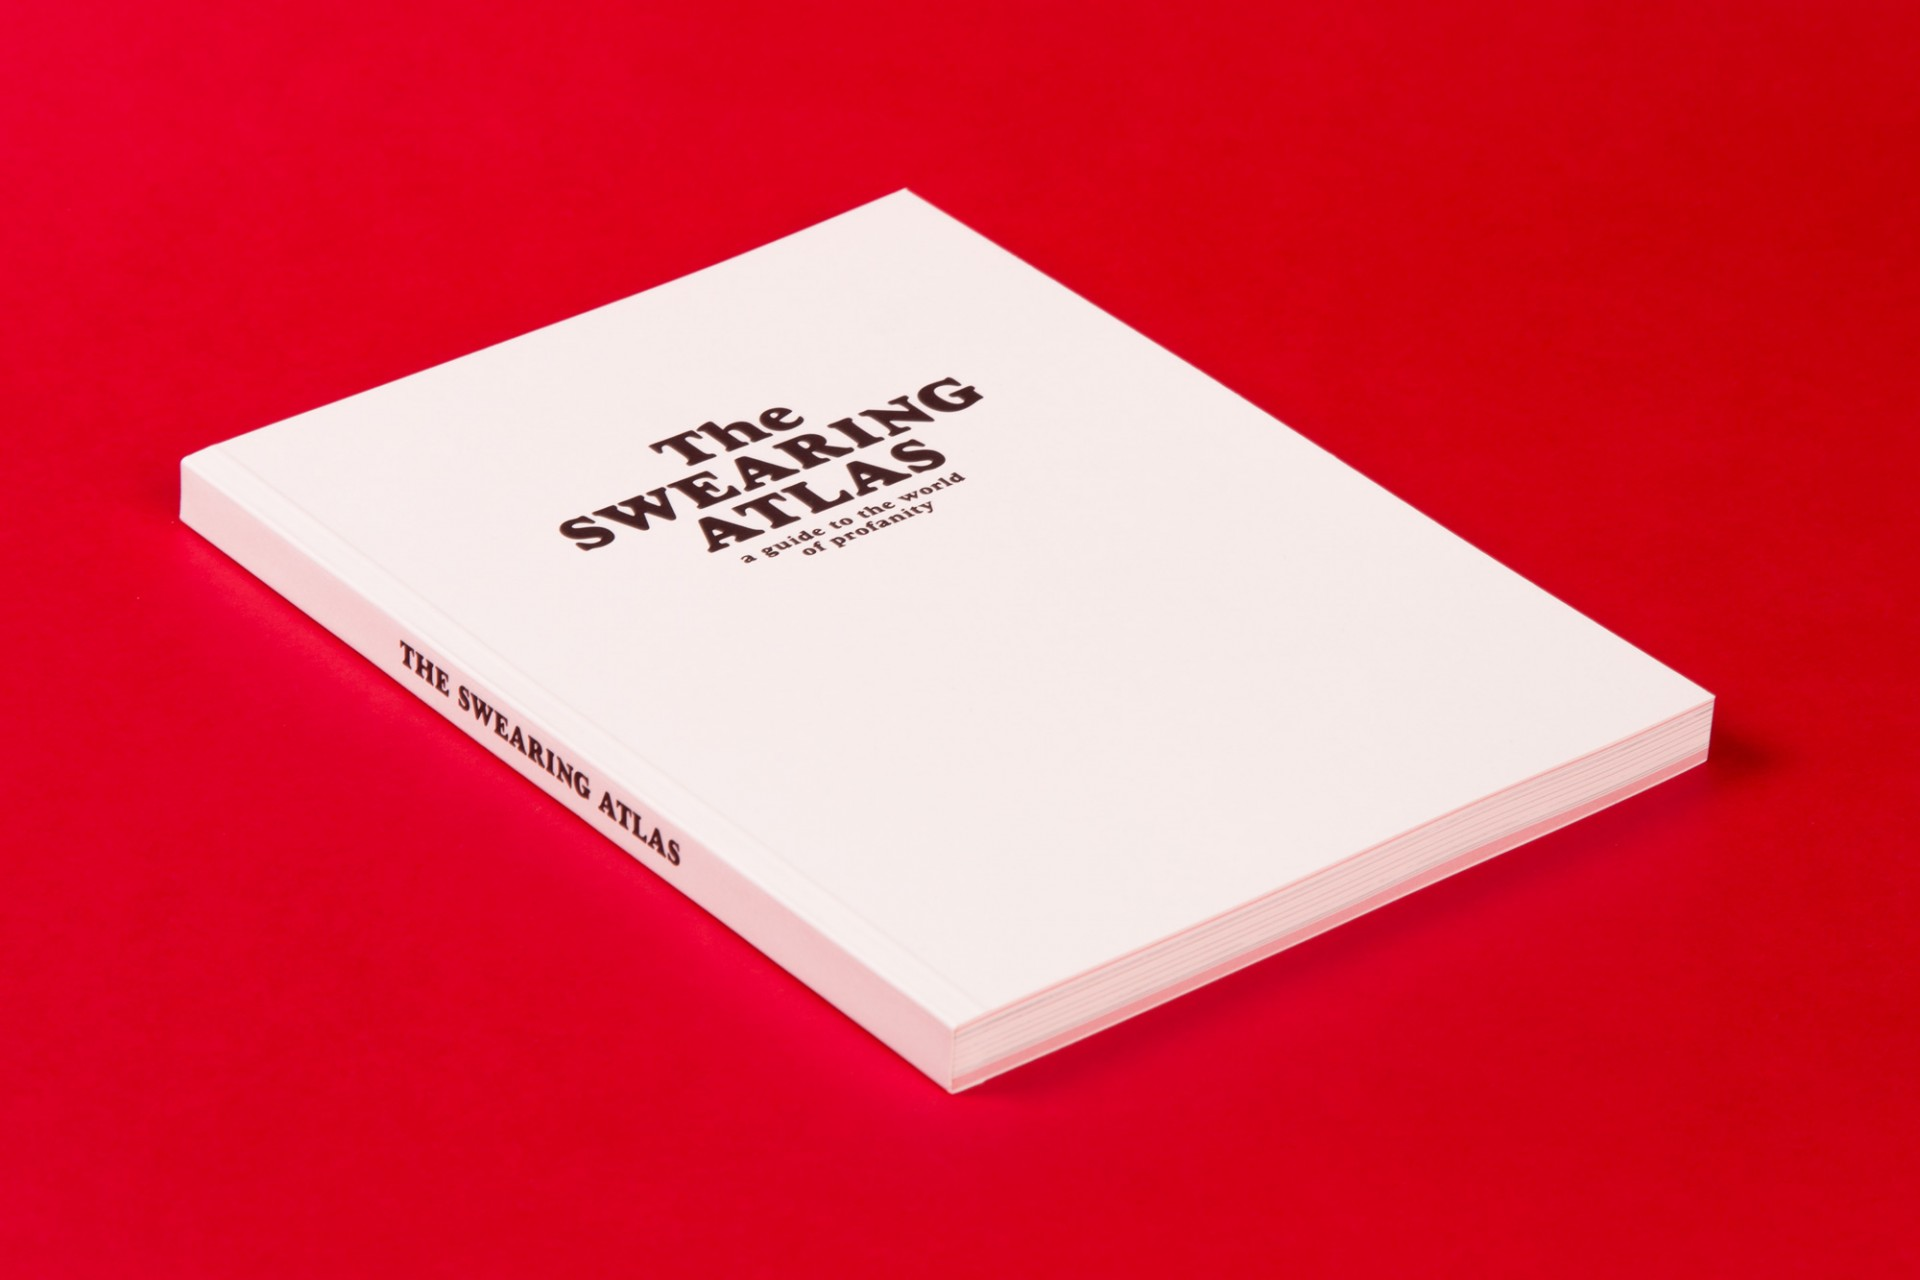 Anna Kiosse The Swearing Collection